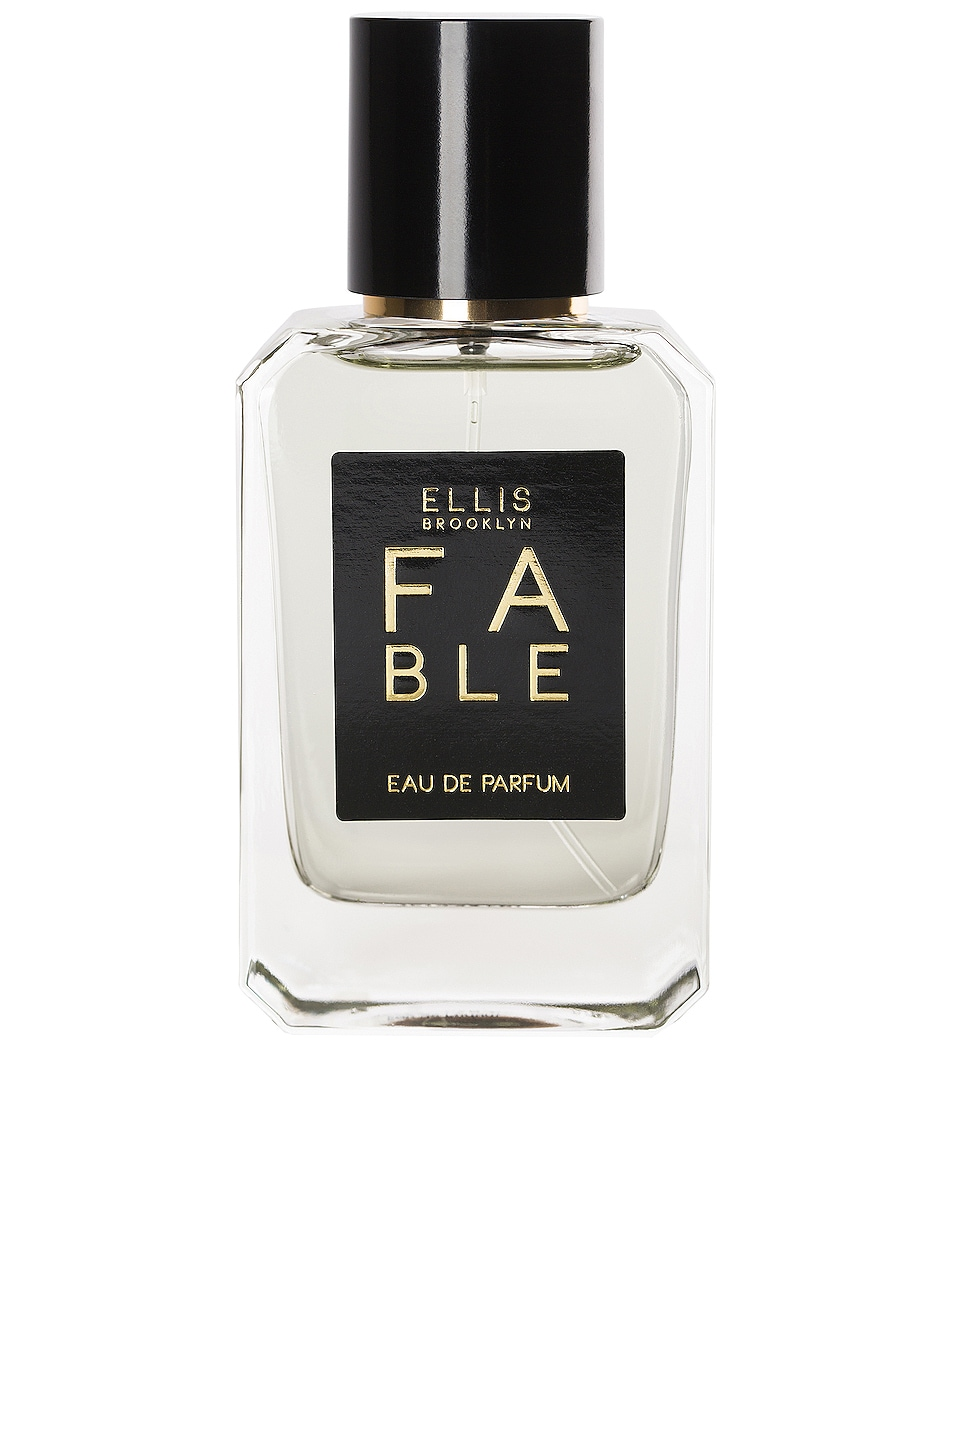 Ellis Brooklyn Fable Eau De Parfum in Fable